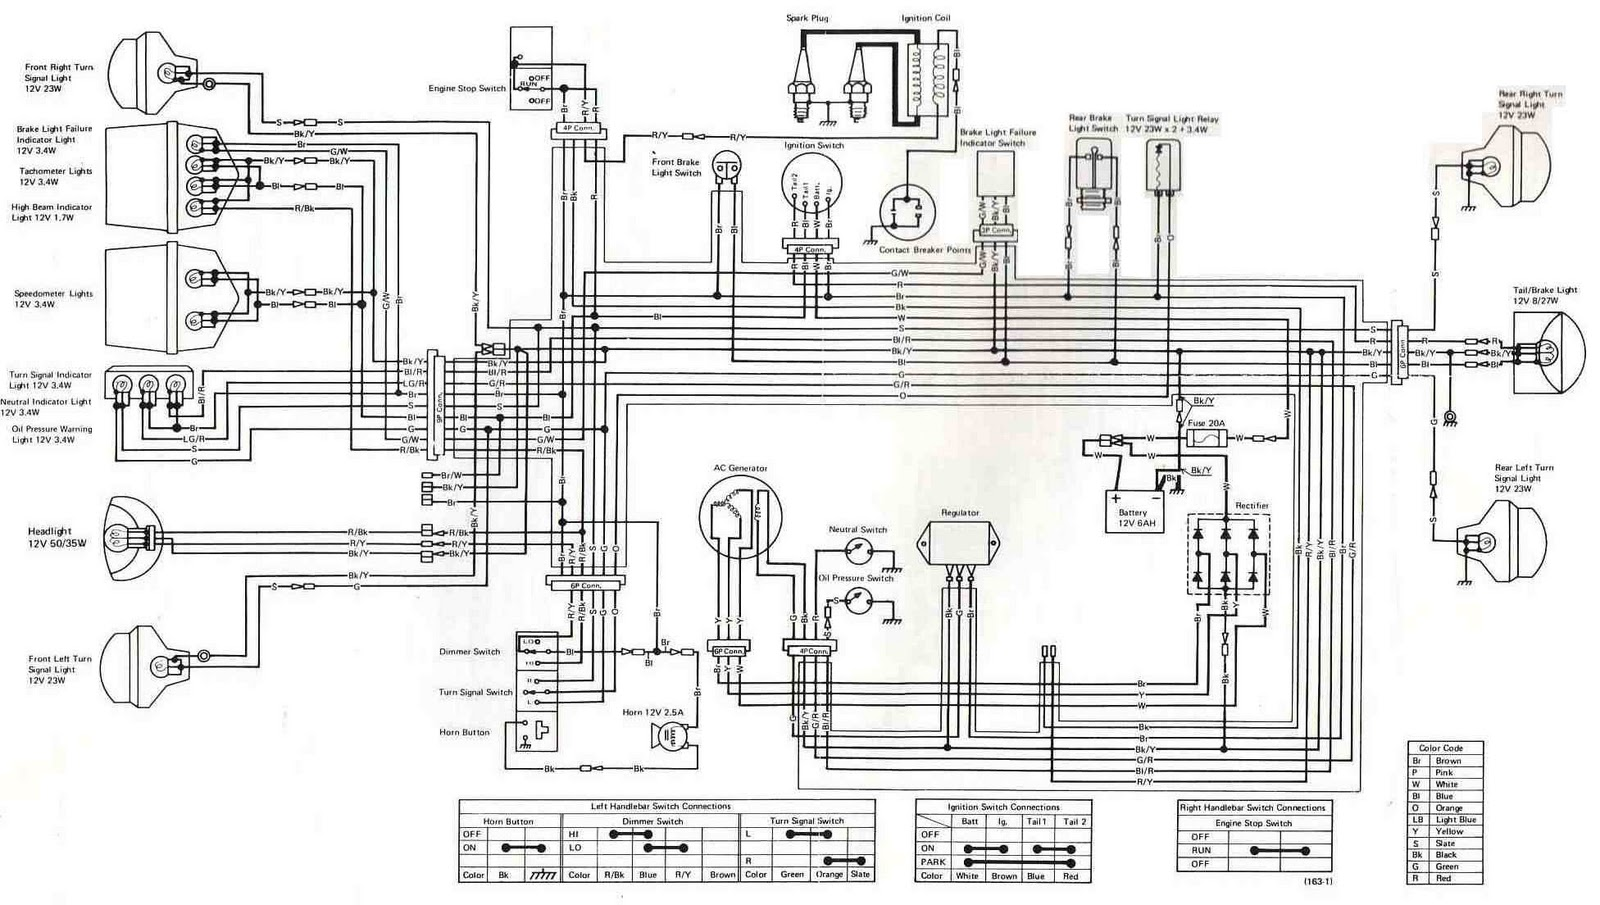 Kawasaki KLT 200 Wiring Diagram All about Wiring Diagrams